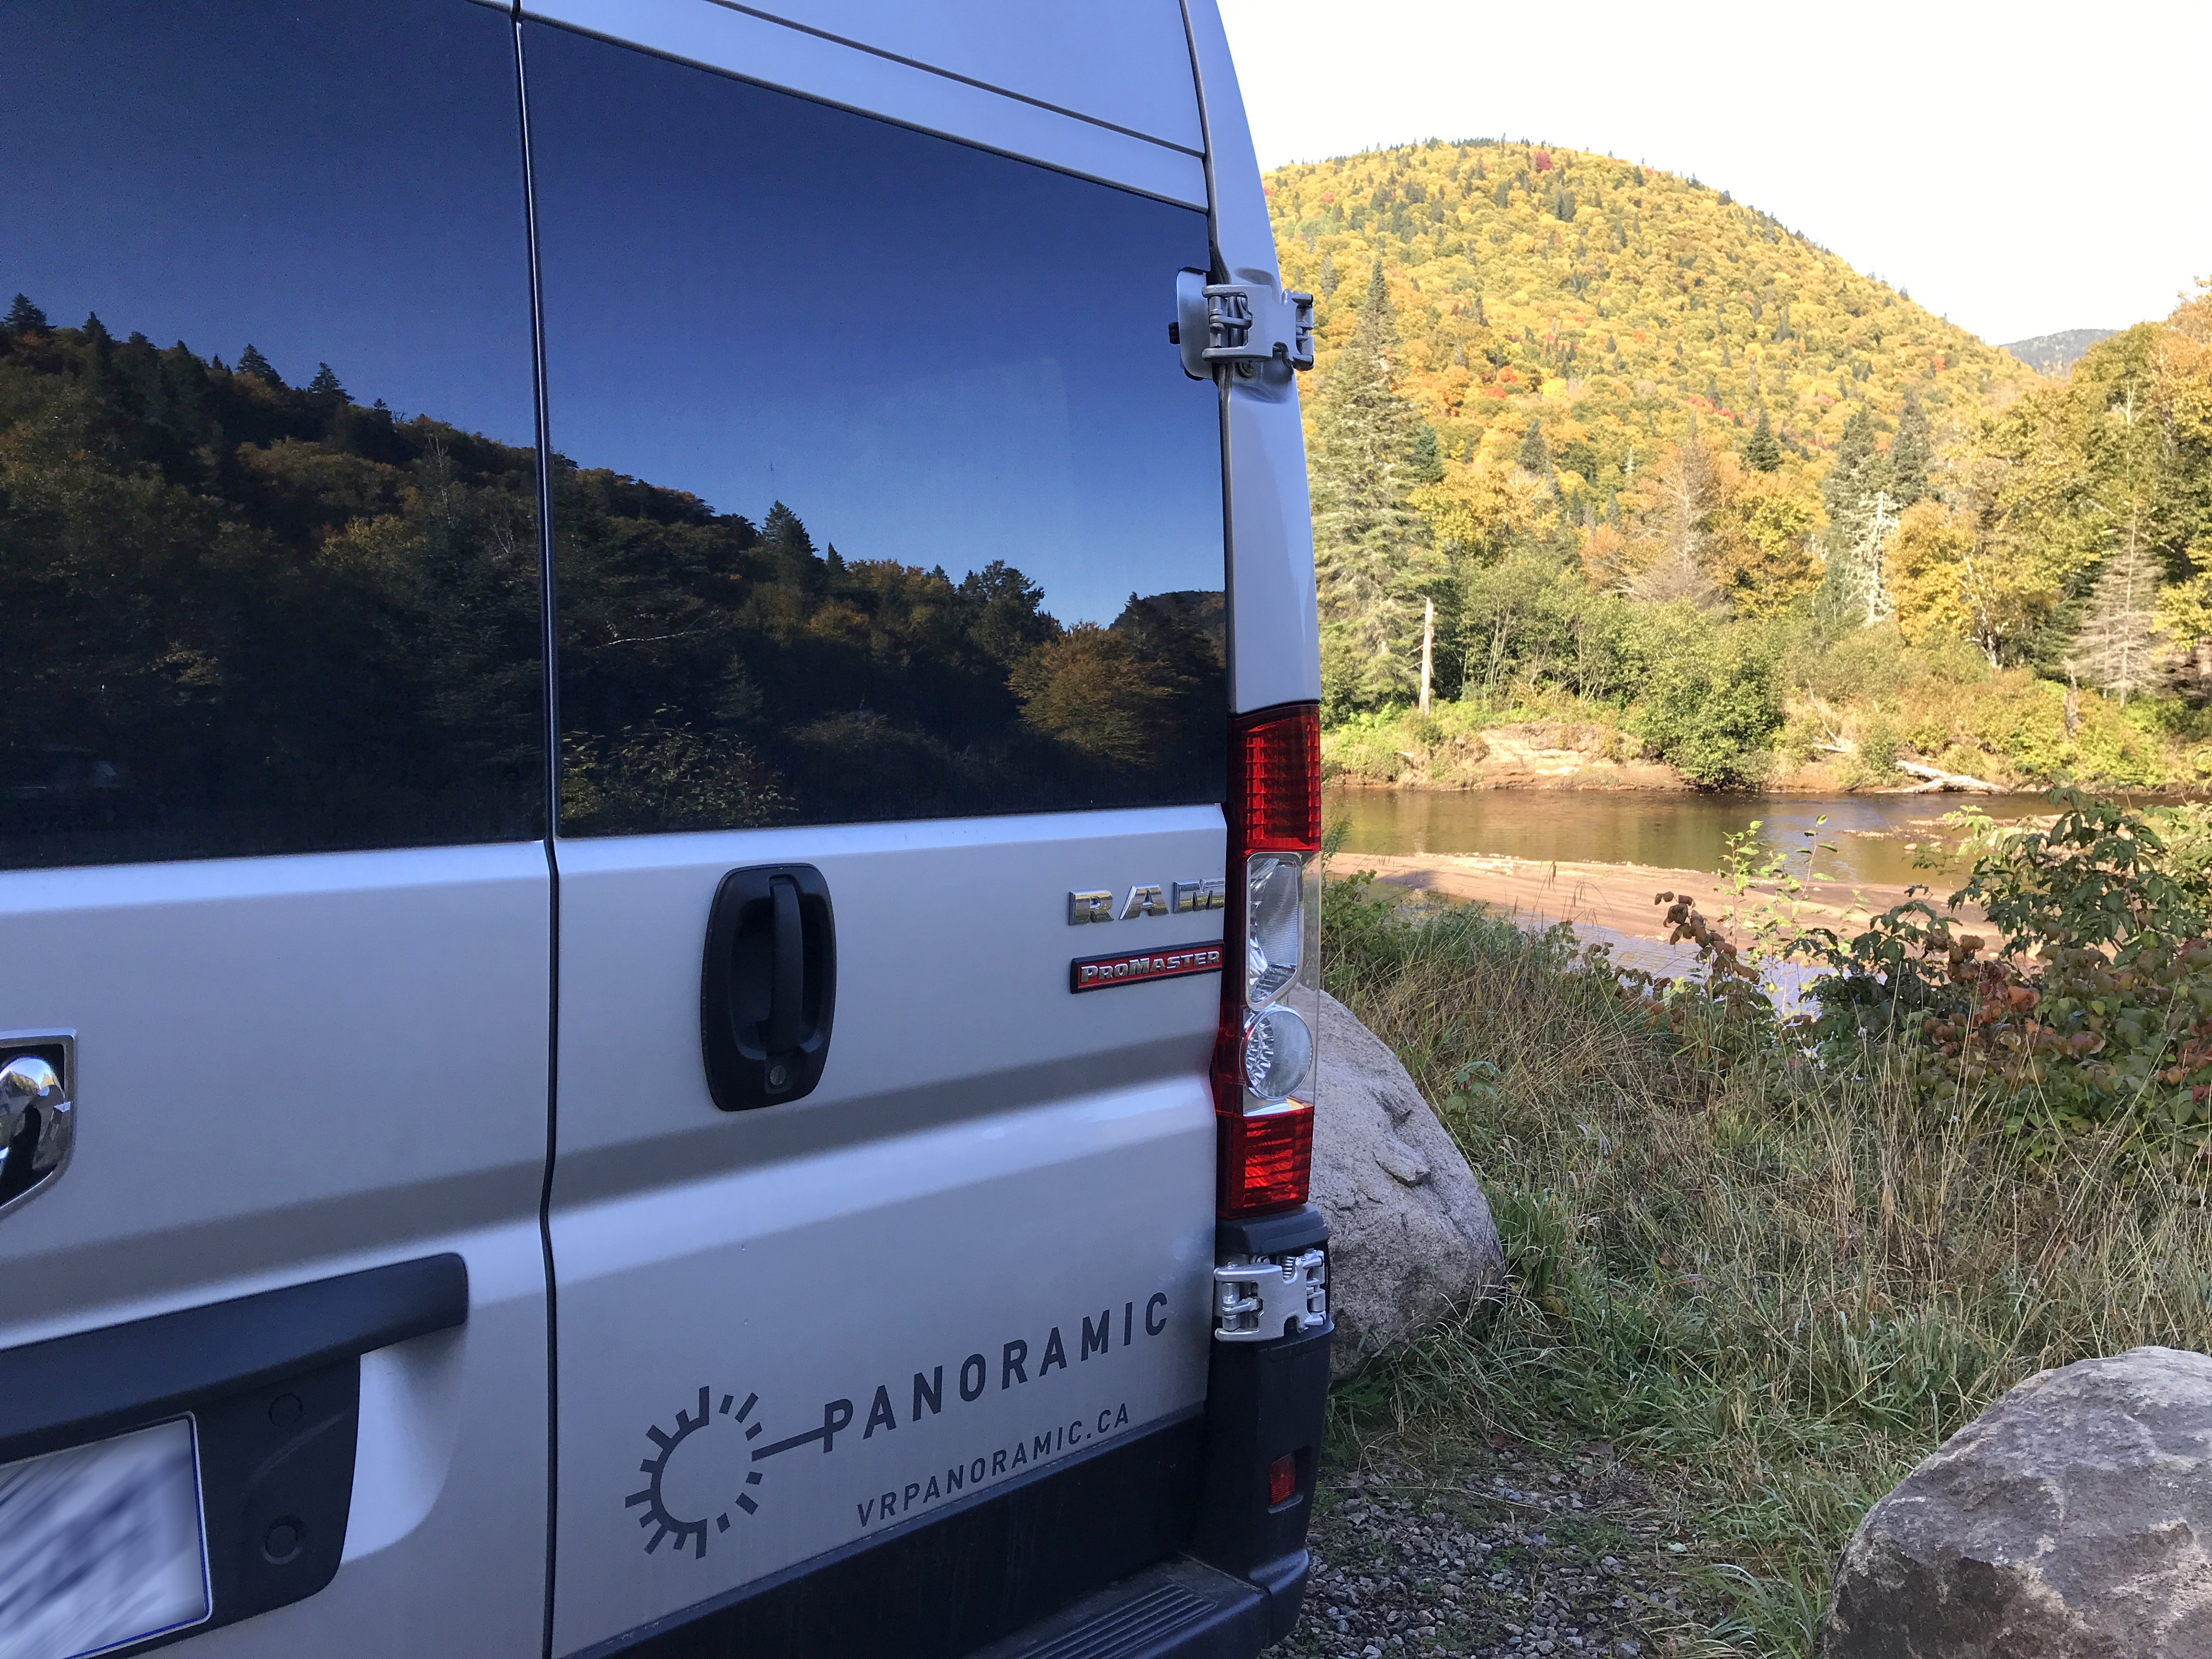 Panoramic RV - Owners - JV - 7